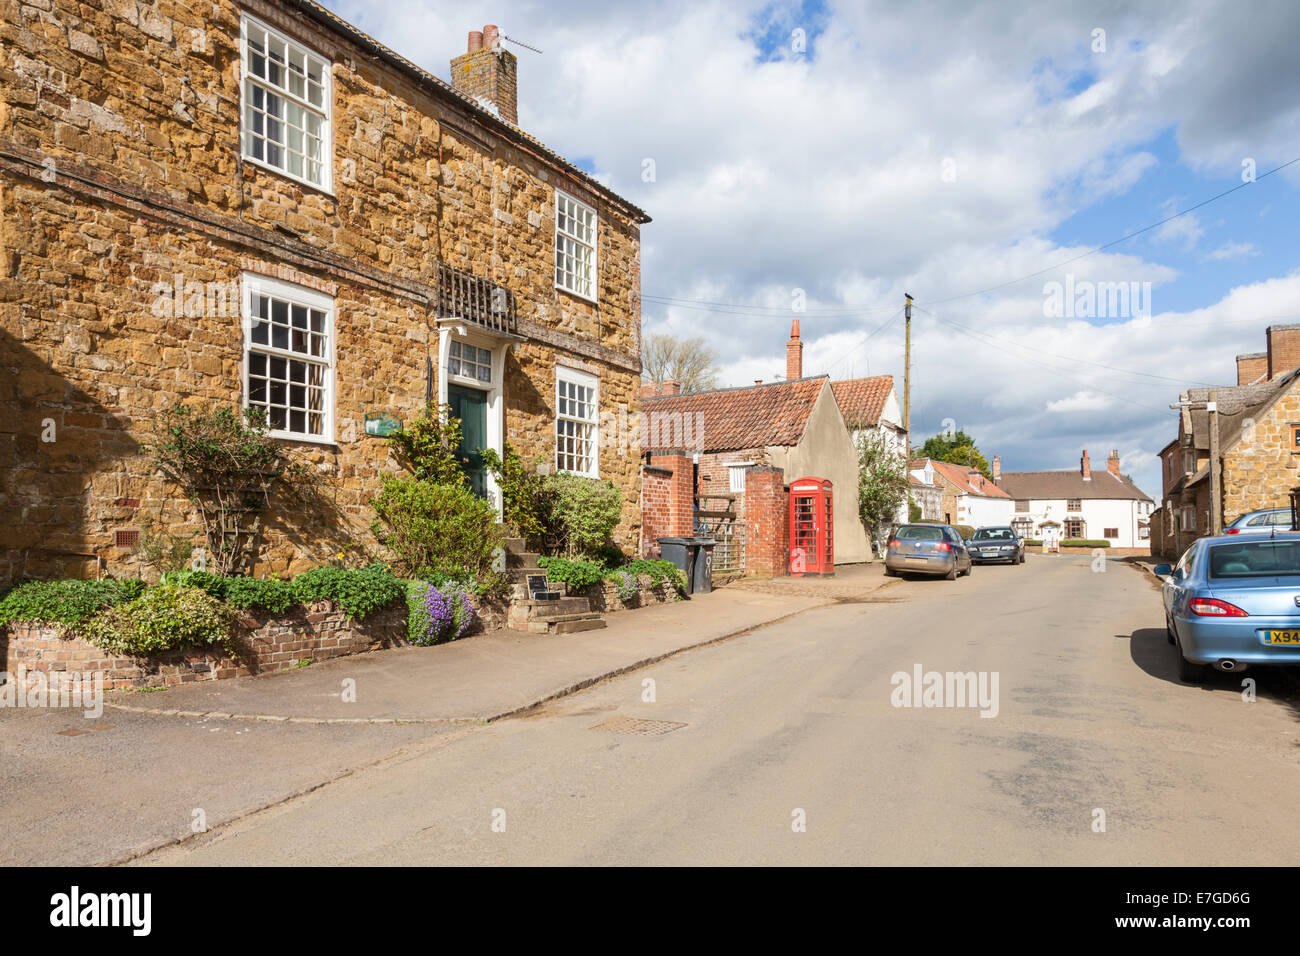 Village of Ab Kettleby, Leicestershire, England, UK - Stock Image